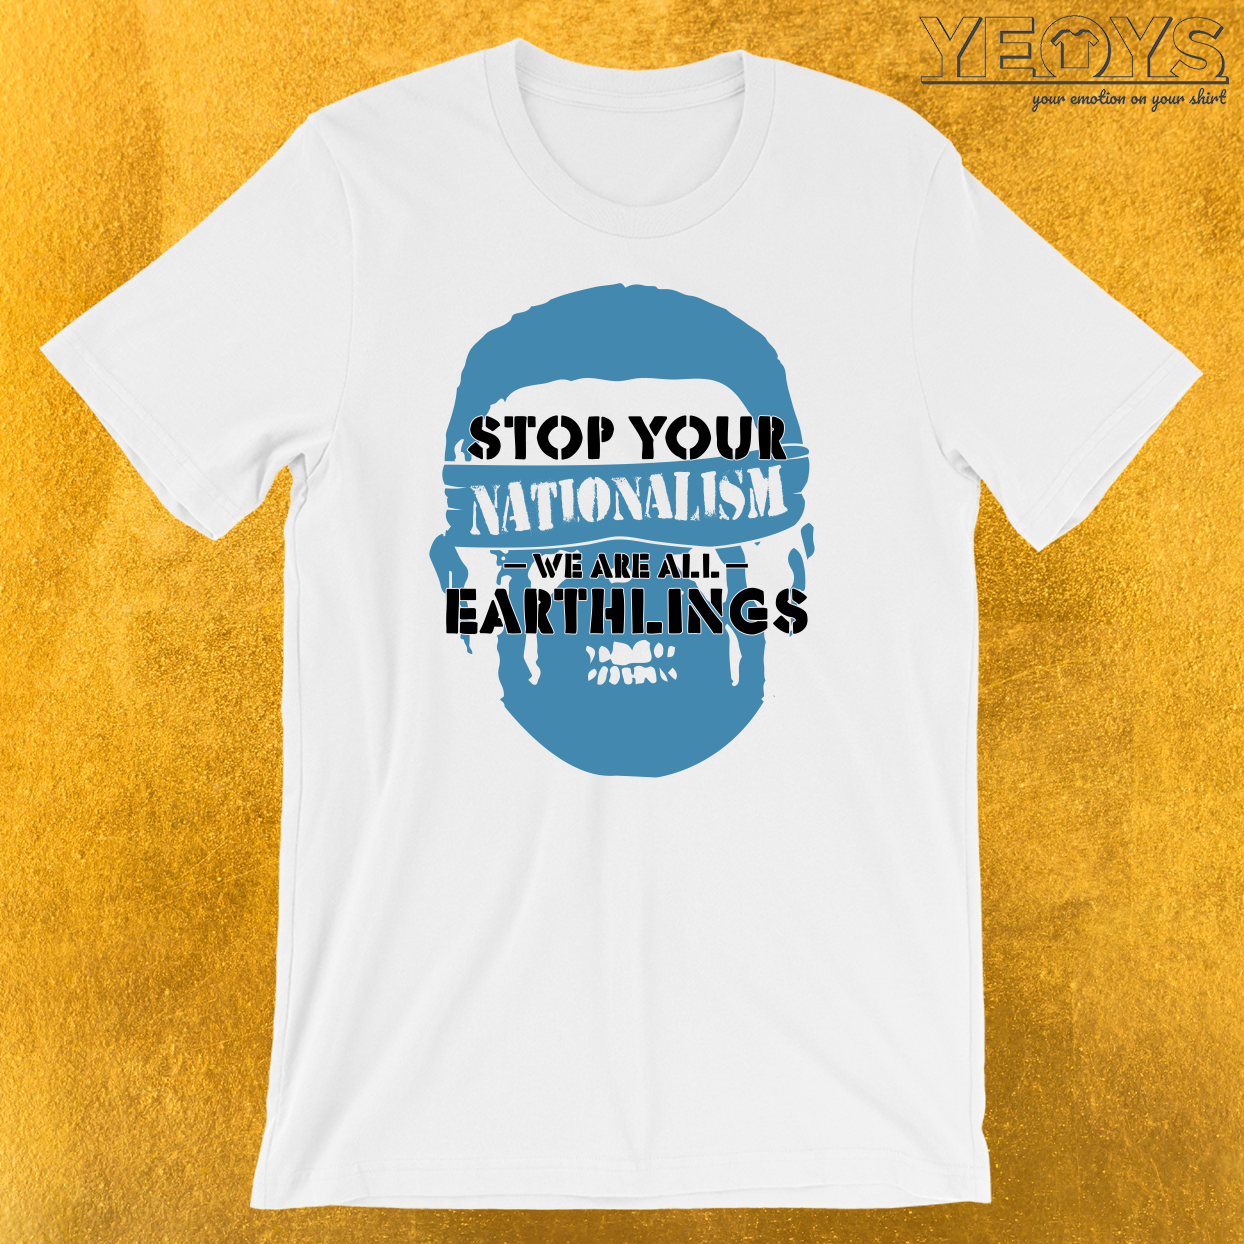 Stop Nationalism We Are Earthlings T-Shirt